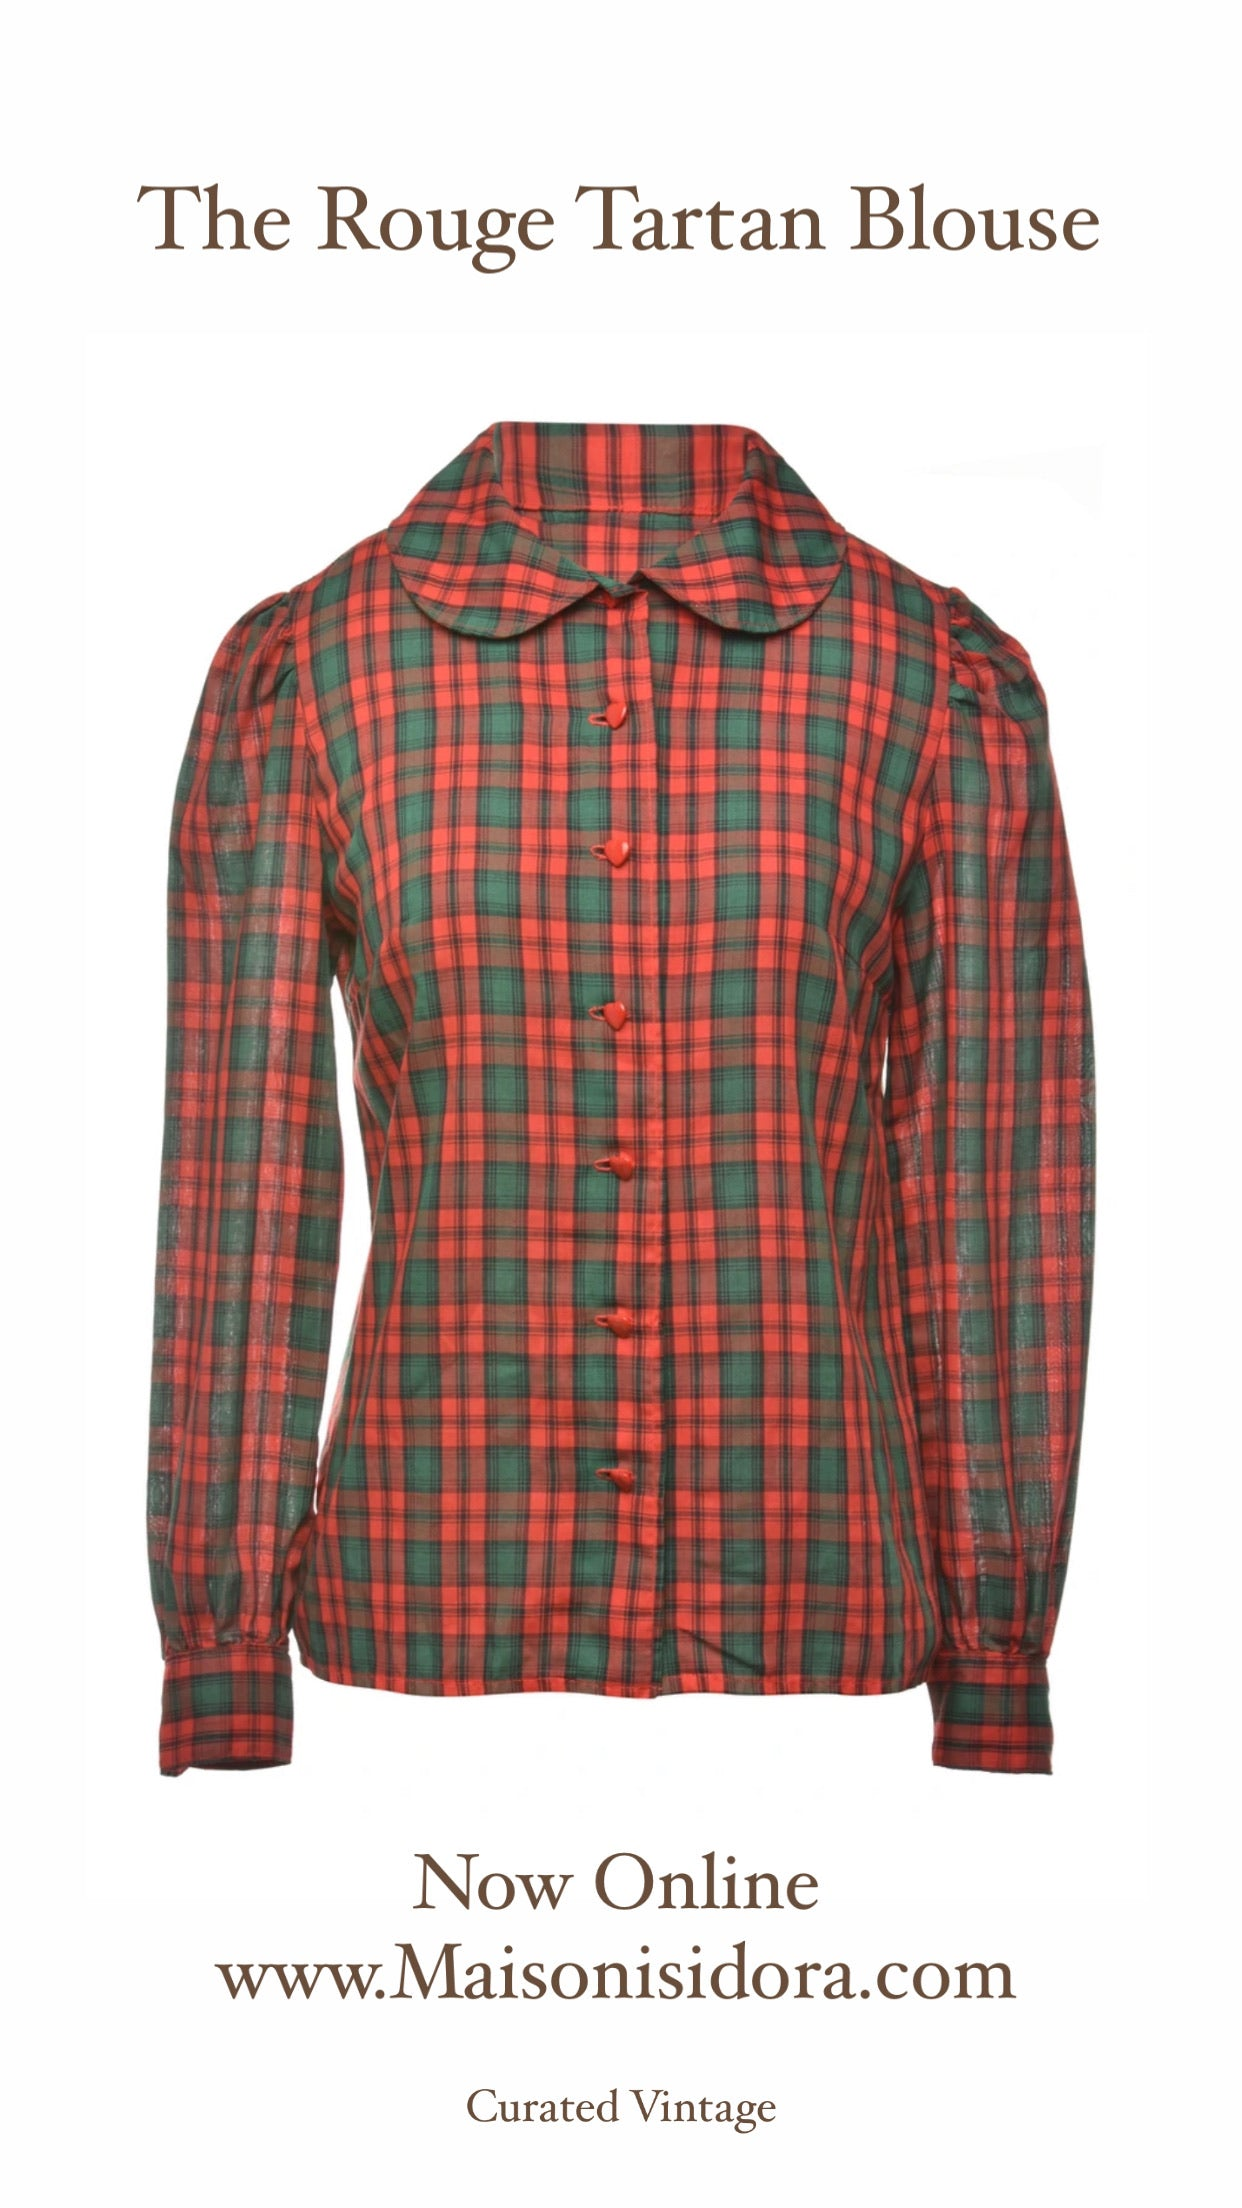 The Rouge Tartan Blouse